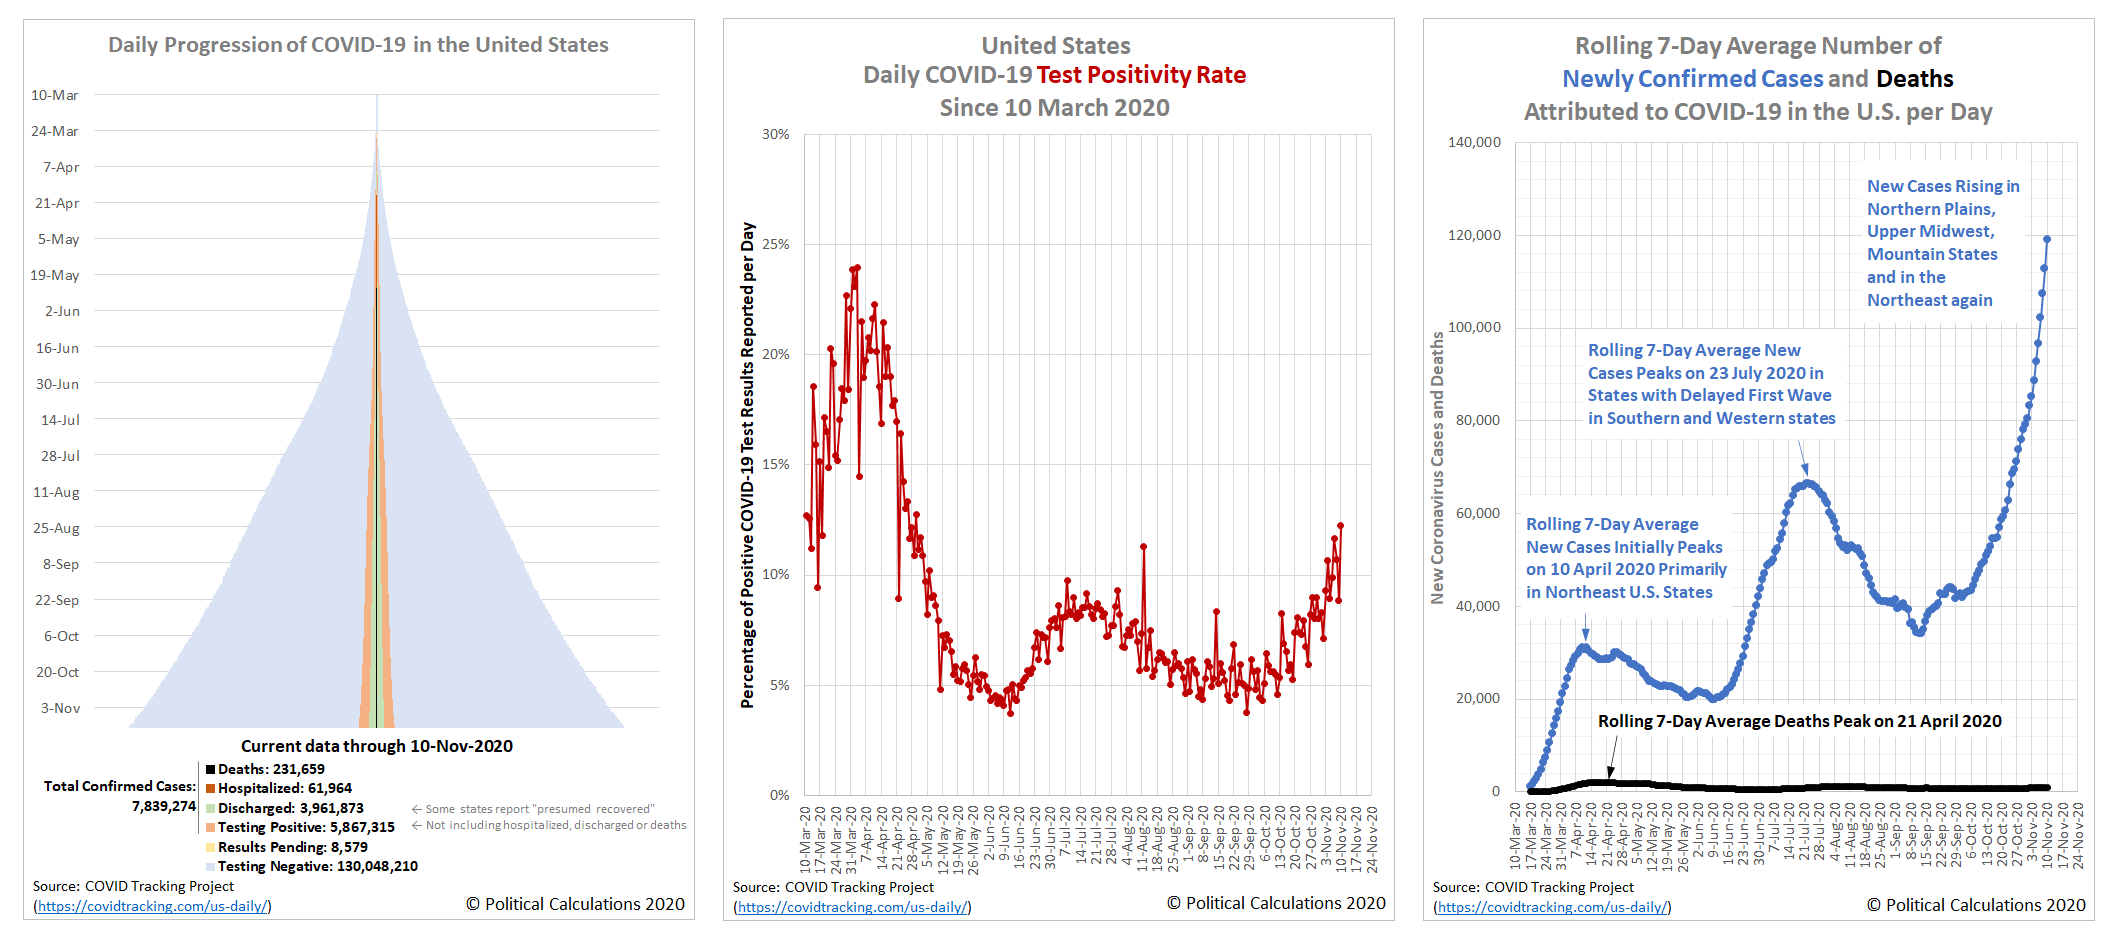 Daily Progression of COVID-19, Daily Positivity Rate, and Rolling 7-Day Averages of Newly Confirmed Cases and Deaths in the U.S., 10 March 2020 - 10 November 2020